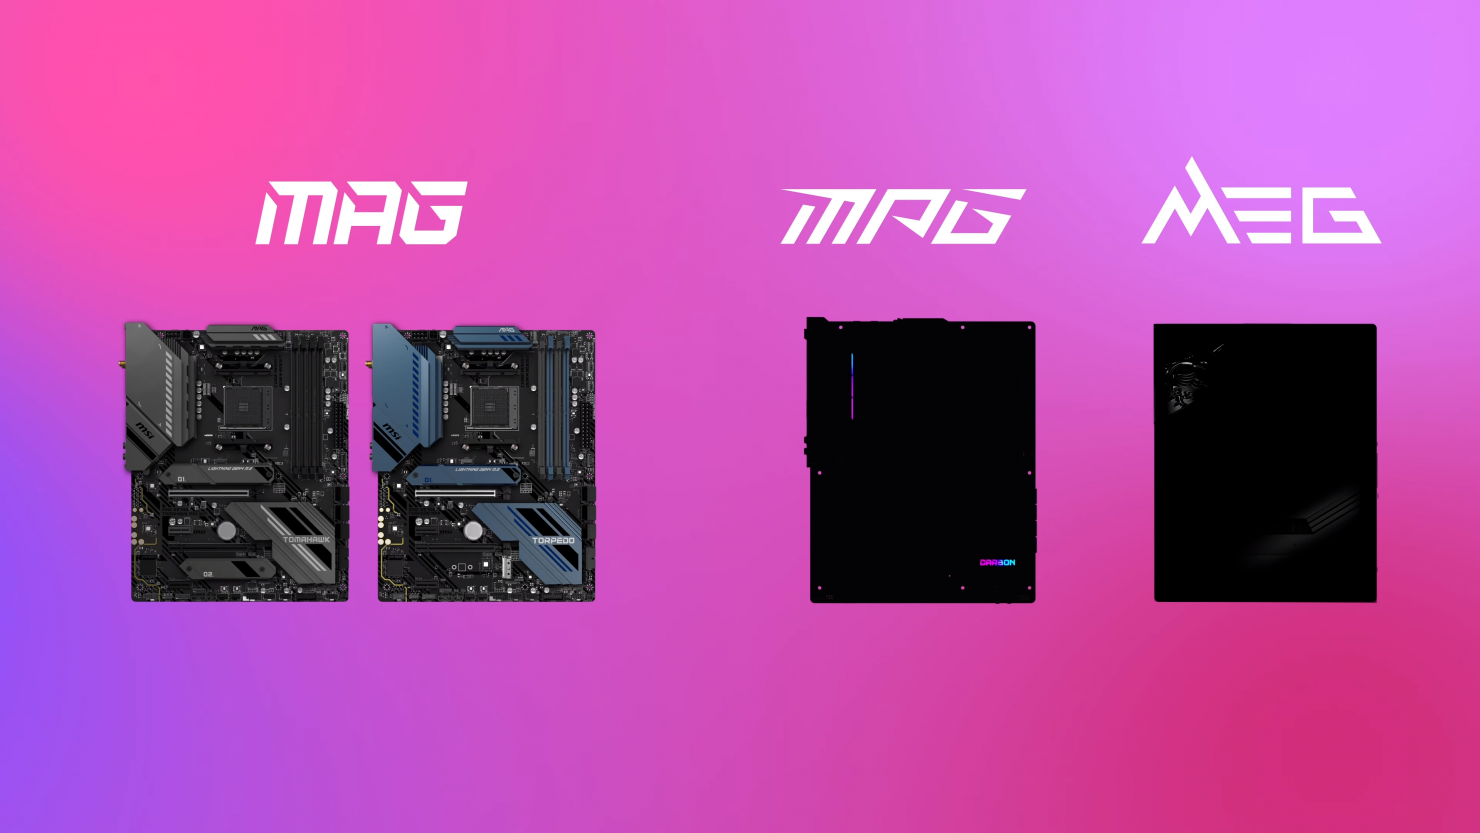 msi-officially-unveils-mag-x570s-tomahawk-wifi-max-&-x570s-torpedo-max-motherboards,-also-teases-mpg-&-meg-x570s-boards